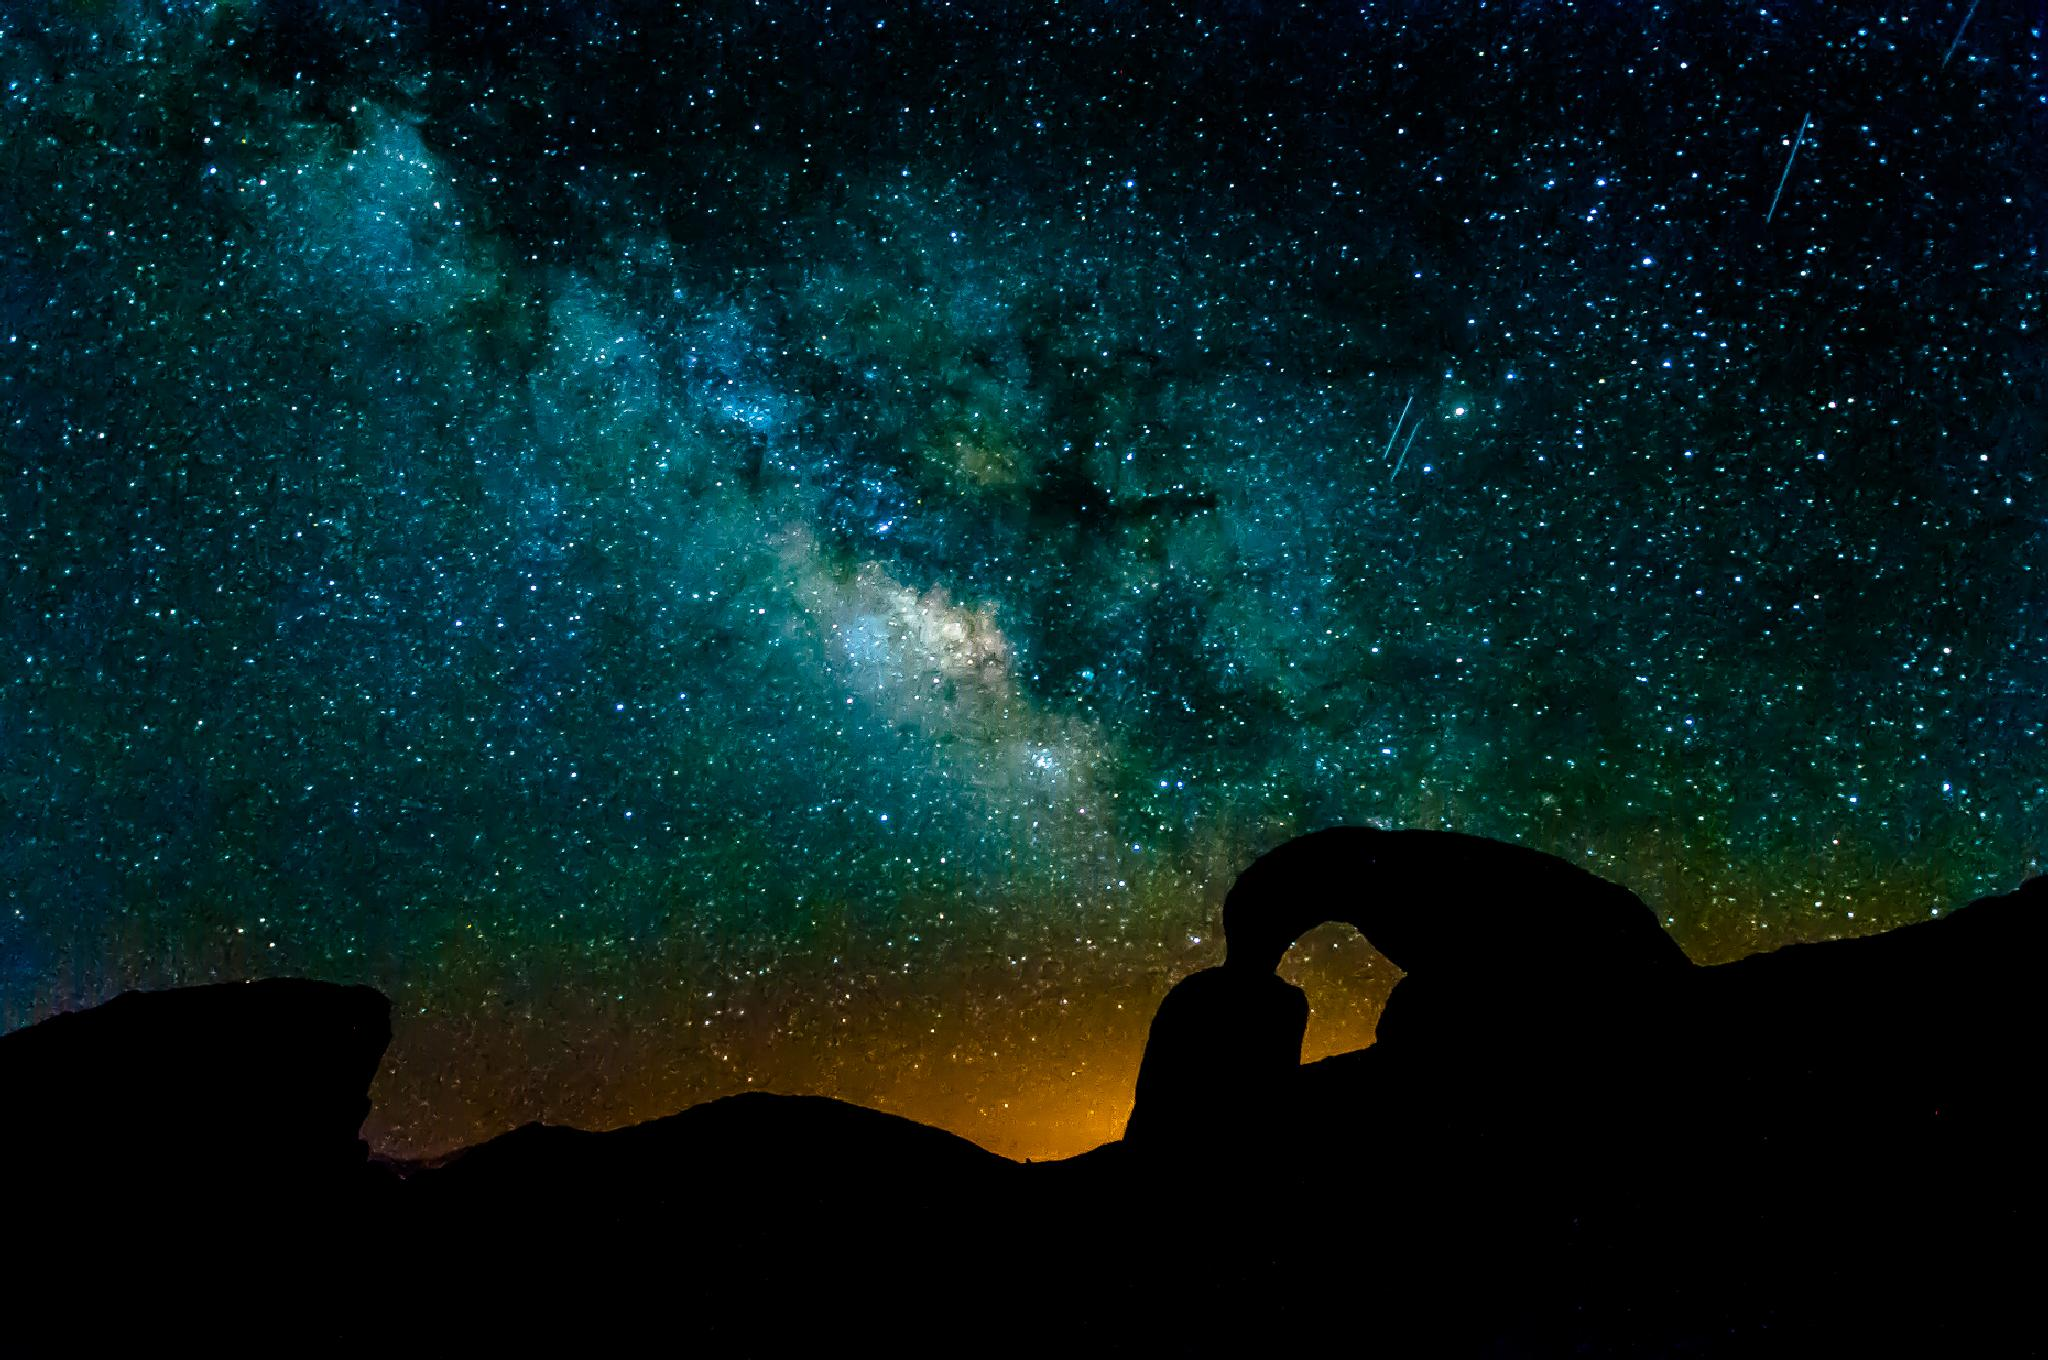 Milky Way Rising by JRGt12